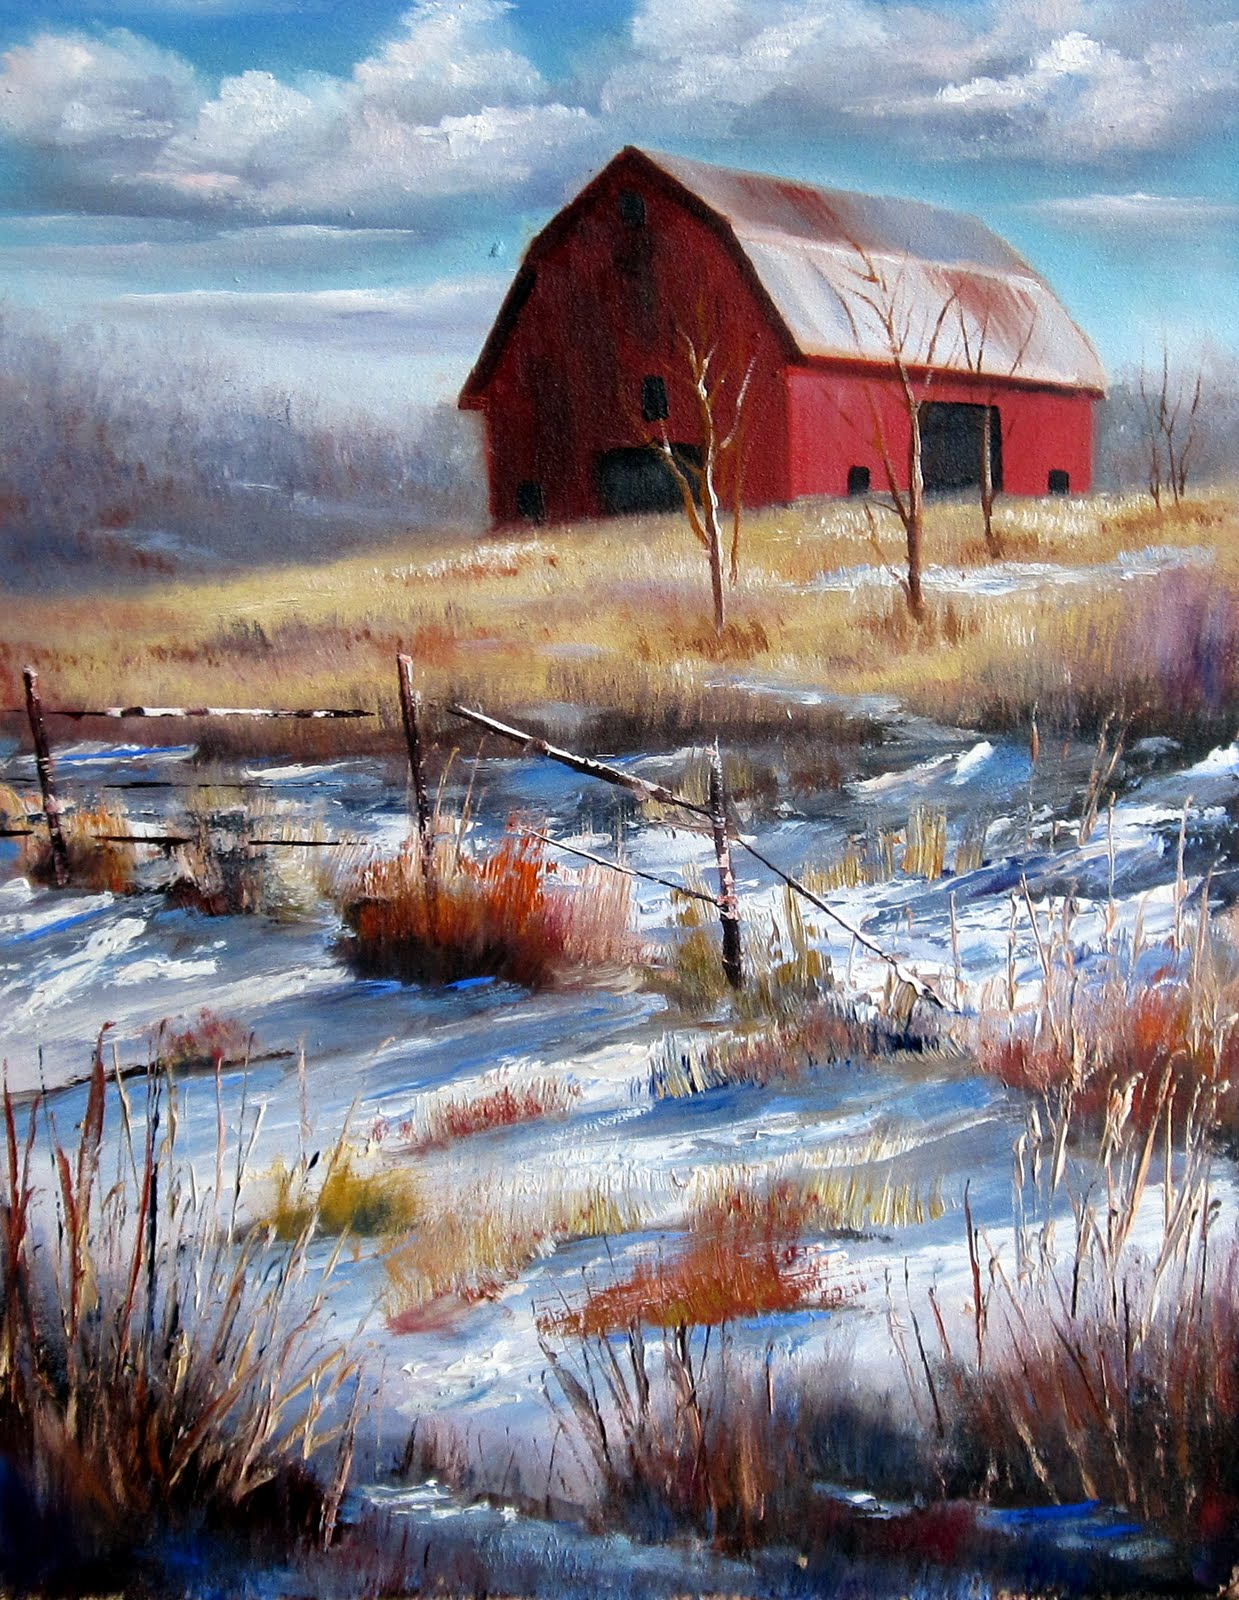 Watch additionally Baron Zemo together with Barn Owl also Tranquil River Scene moreover Michigan Barn In Snow. on red barn